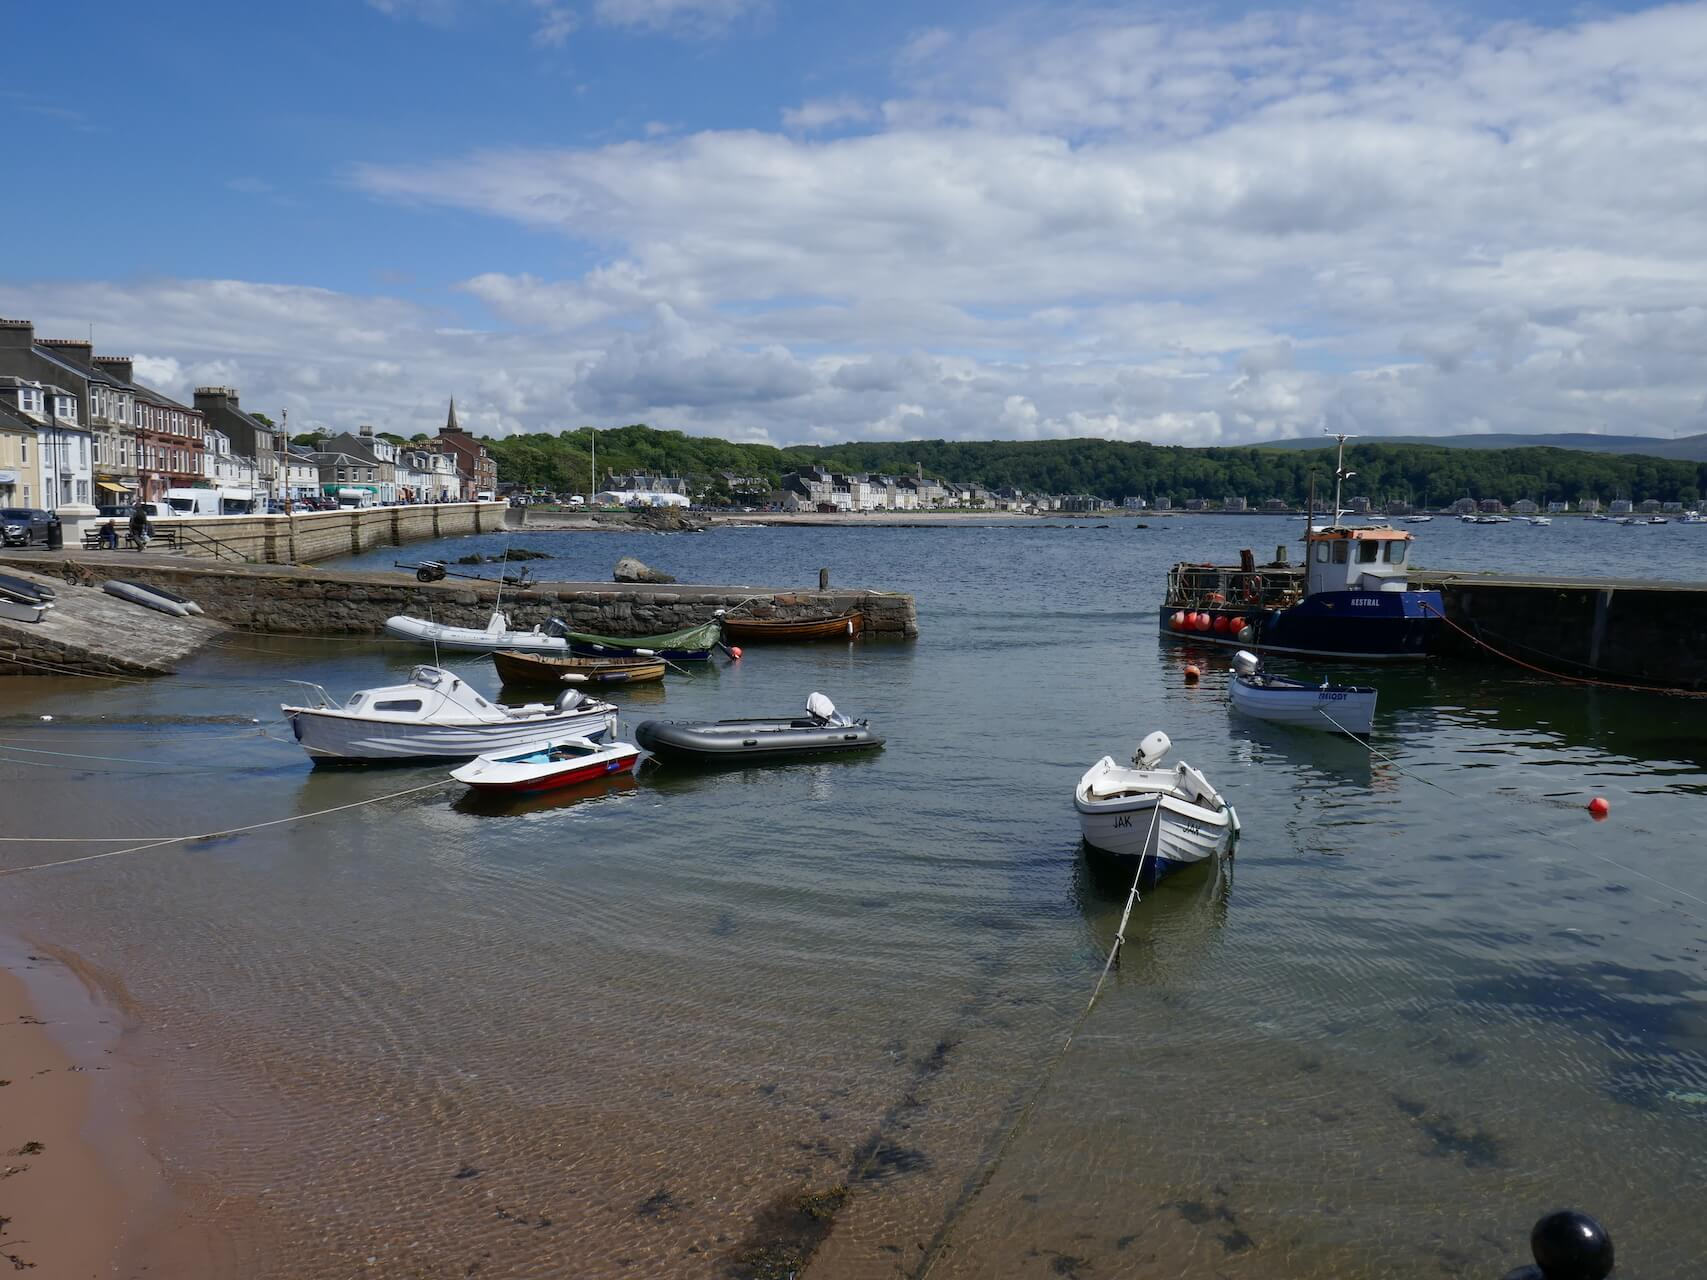 Small boats in Millport Harbour, Isle of Cumbrae